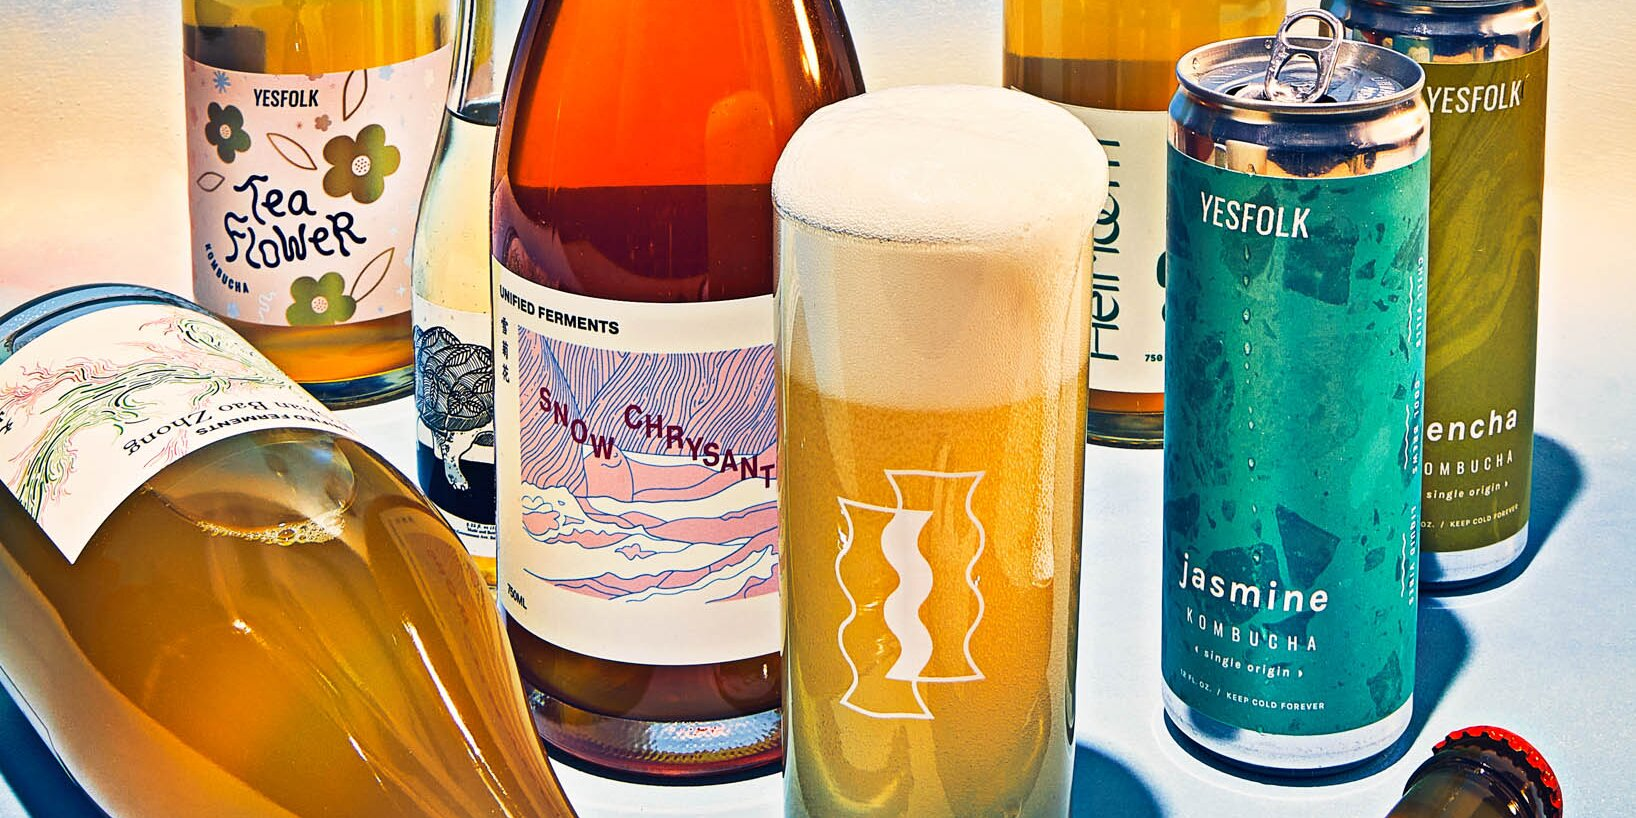 Bottles and cans from small batch kombucha brewers